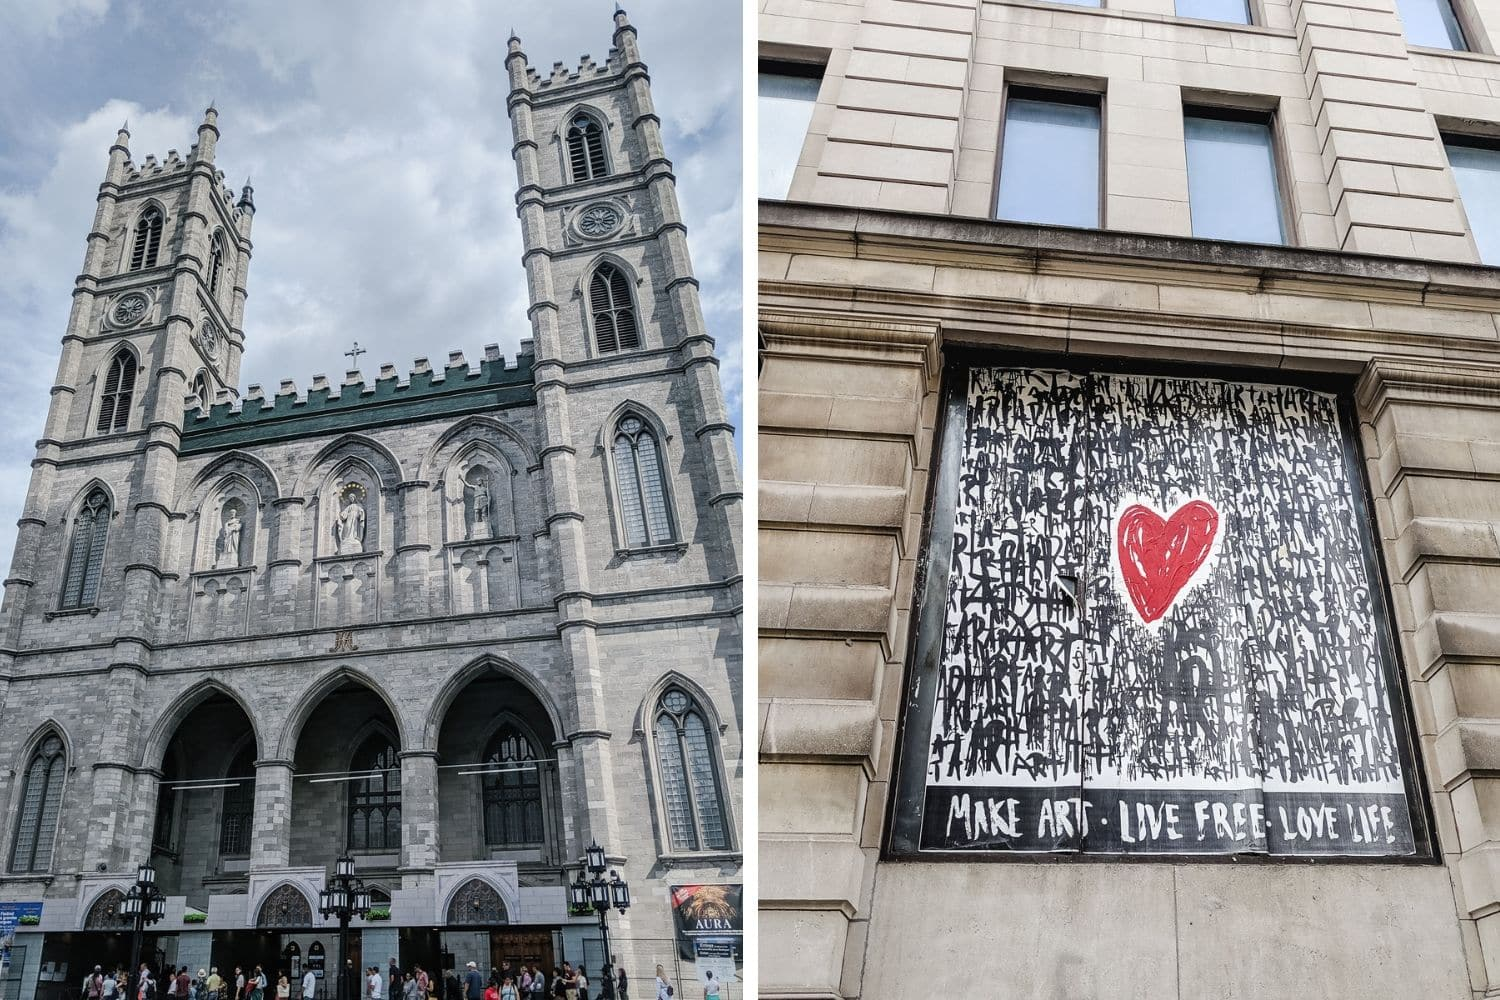 Notre Dame Basilica and street art in Montreal